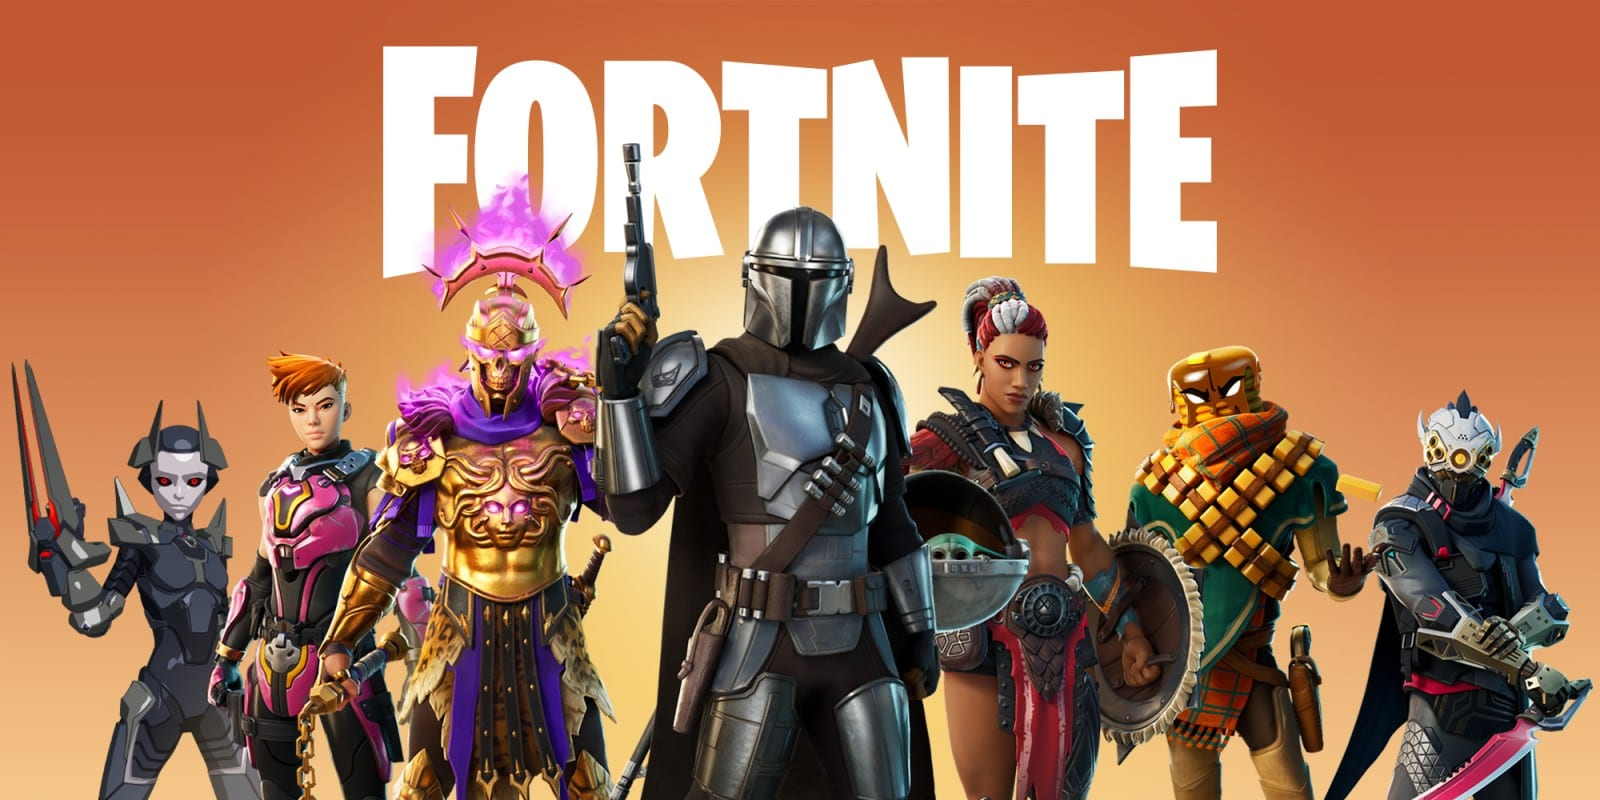 FORTNITE JUBPA CUP – PHASE 2 + 3